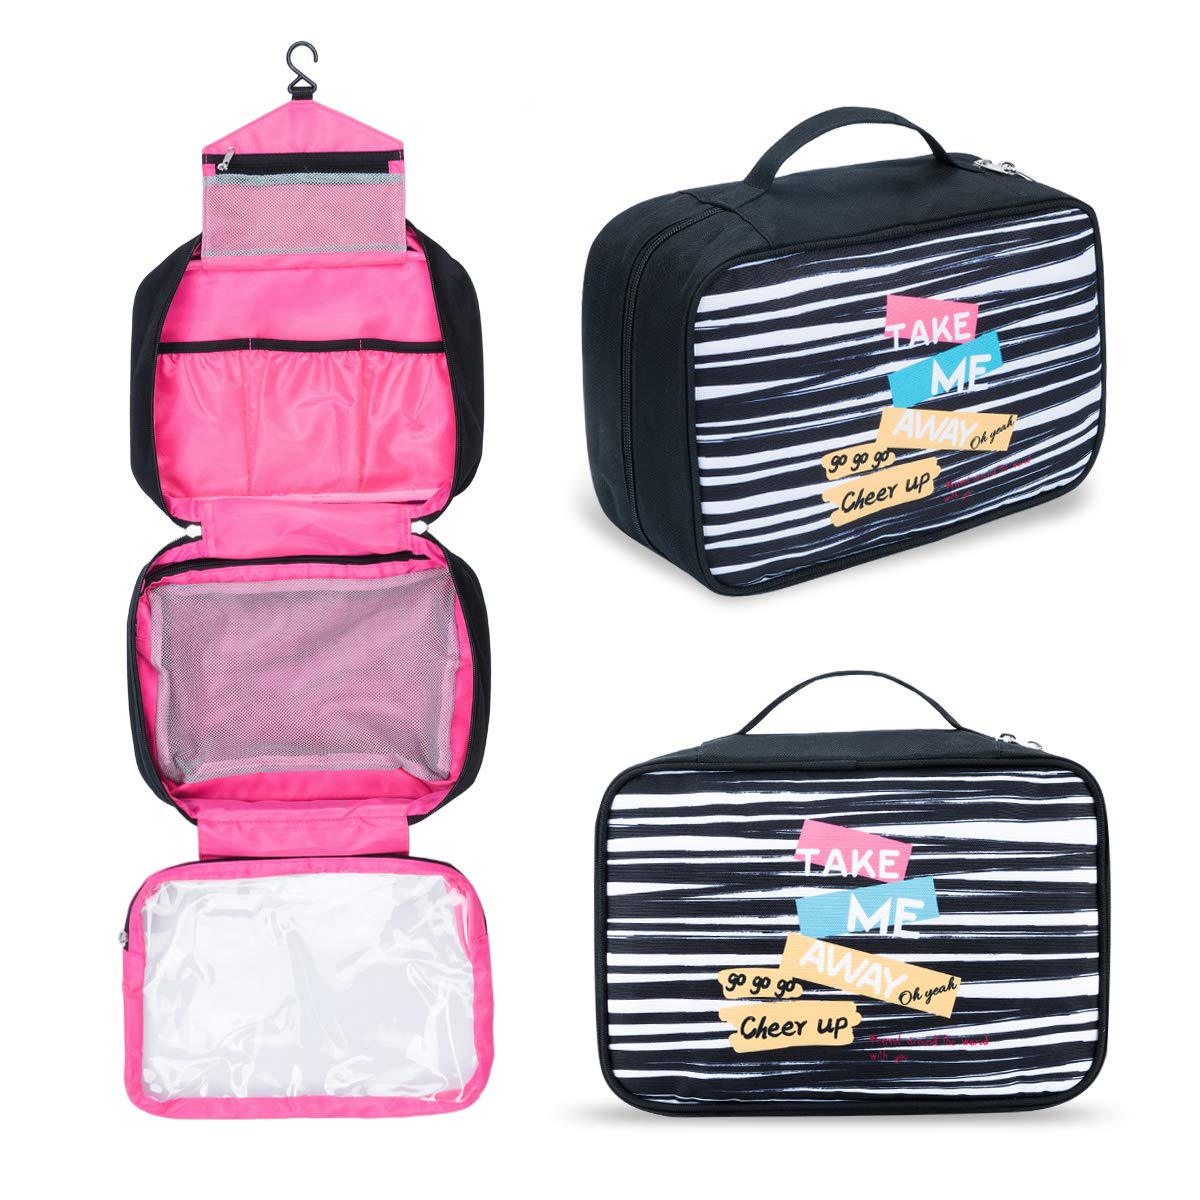 Toiletry Bag Hanging Travel Bag Portable Folding Travel Bags for Toiletries Leak Proof Compact Cosmetics Bag for Women, Men, Kids Carry On Makeup Bags Black Strips